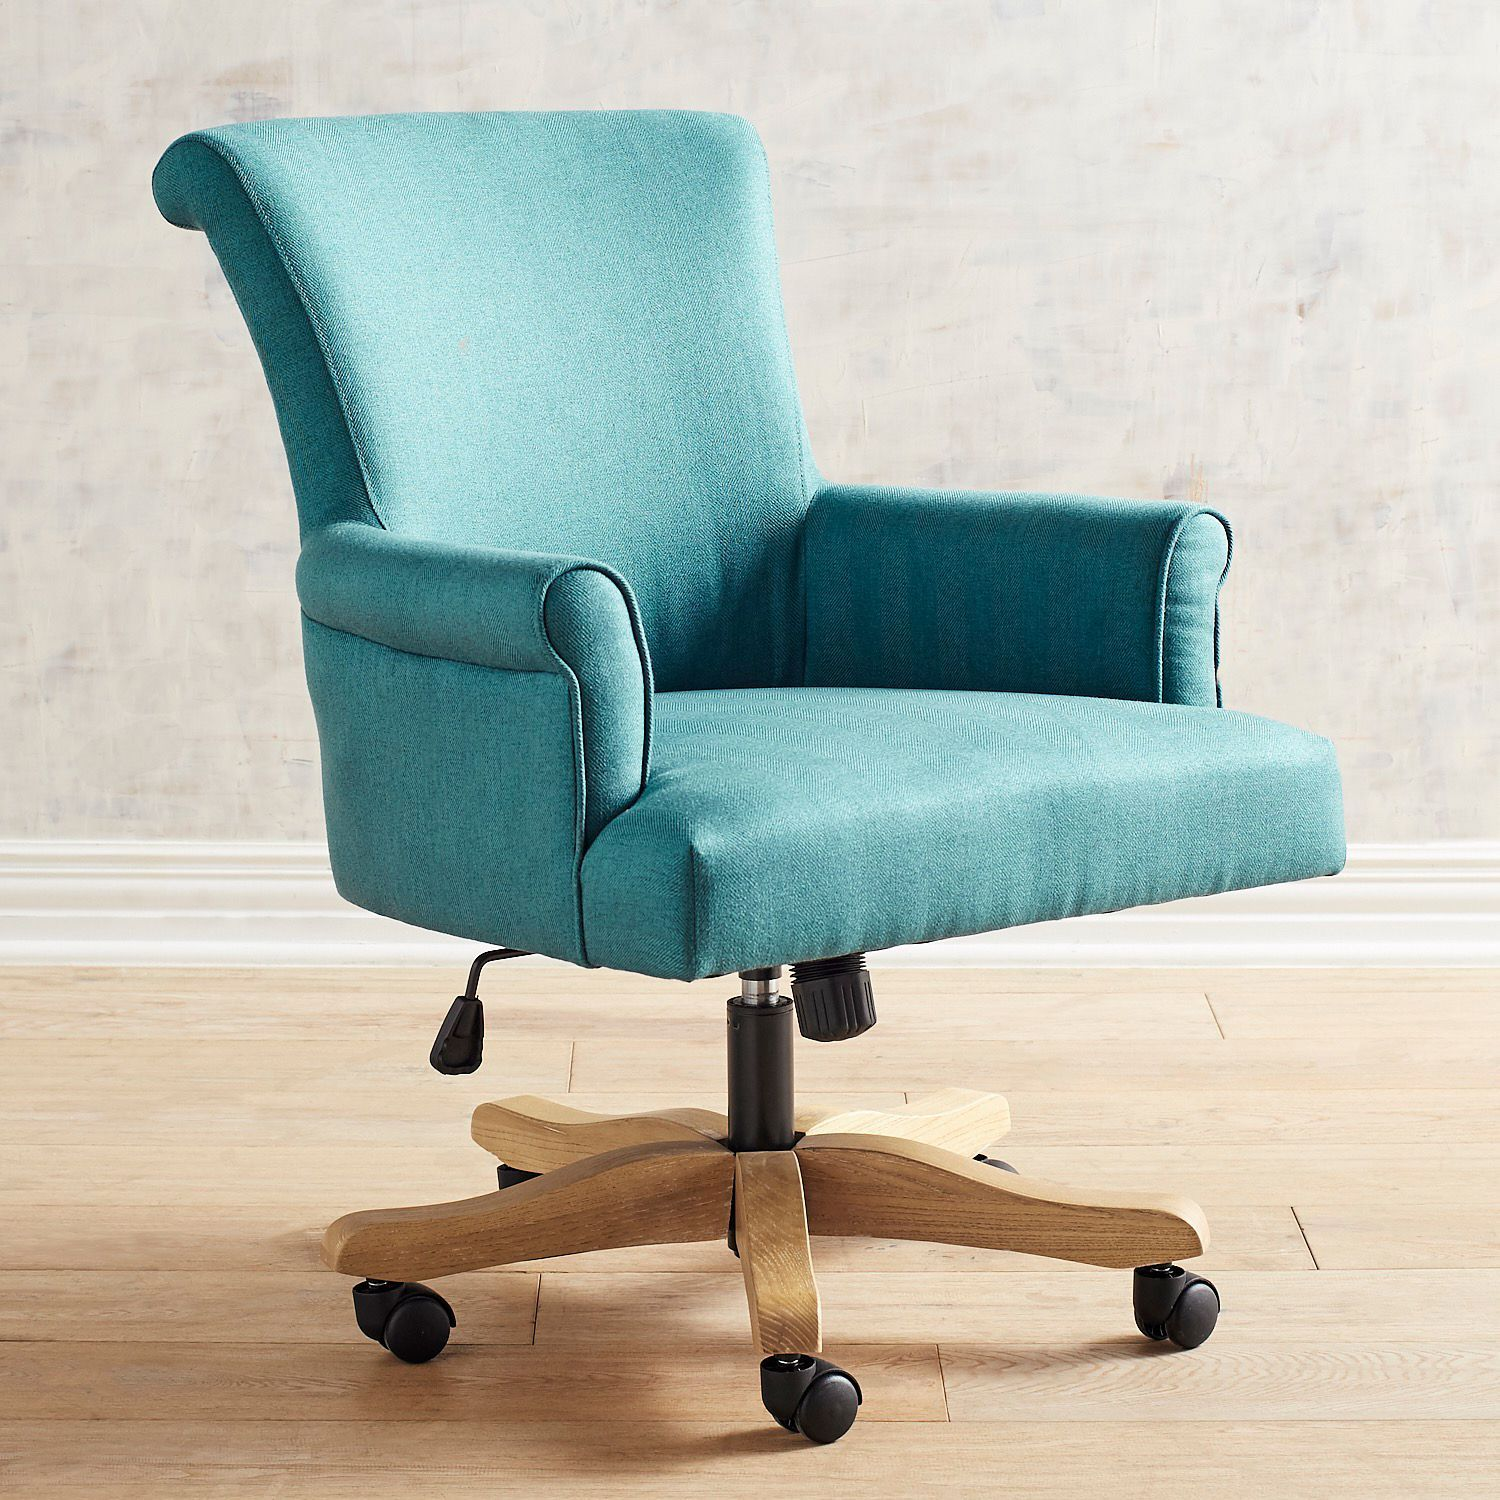 Brennon Sky Turquoise Swivel Desk Chair Home Office Chairs Swivel Chair Desk Patio Chair Cushions